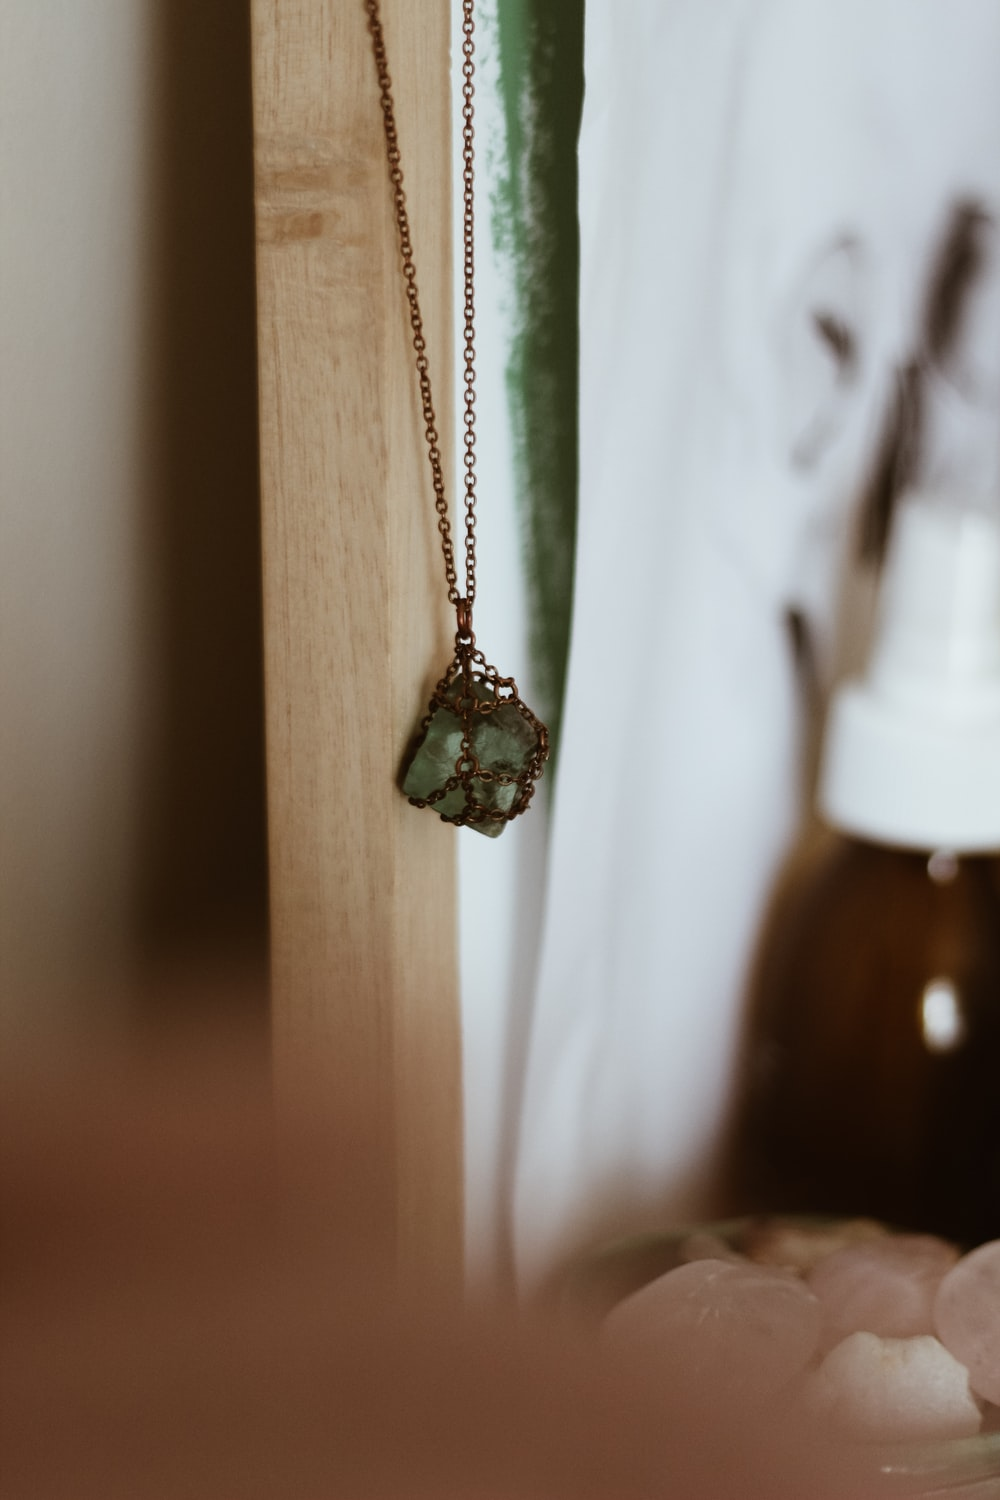 silver-colored necklace hanging on white wooden wall